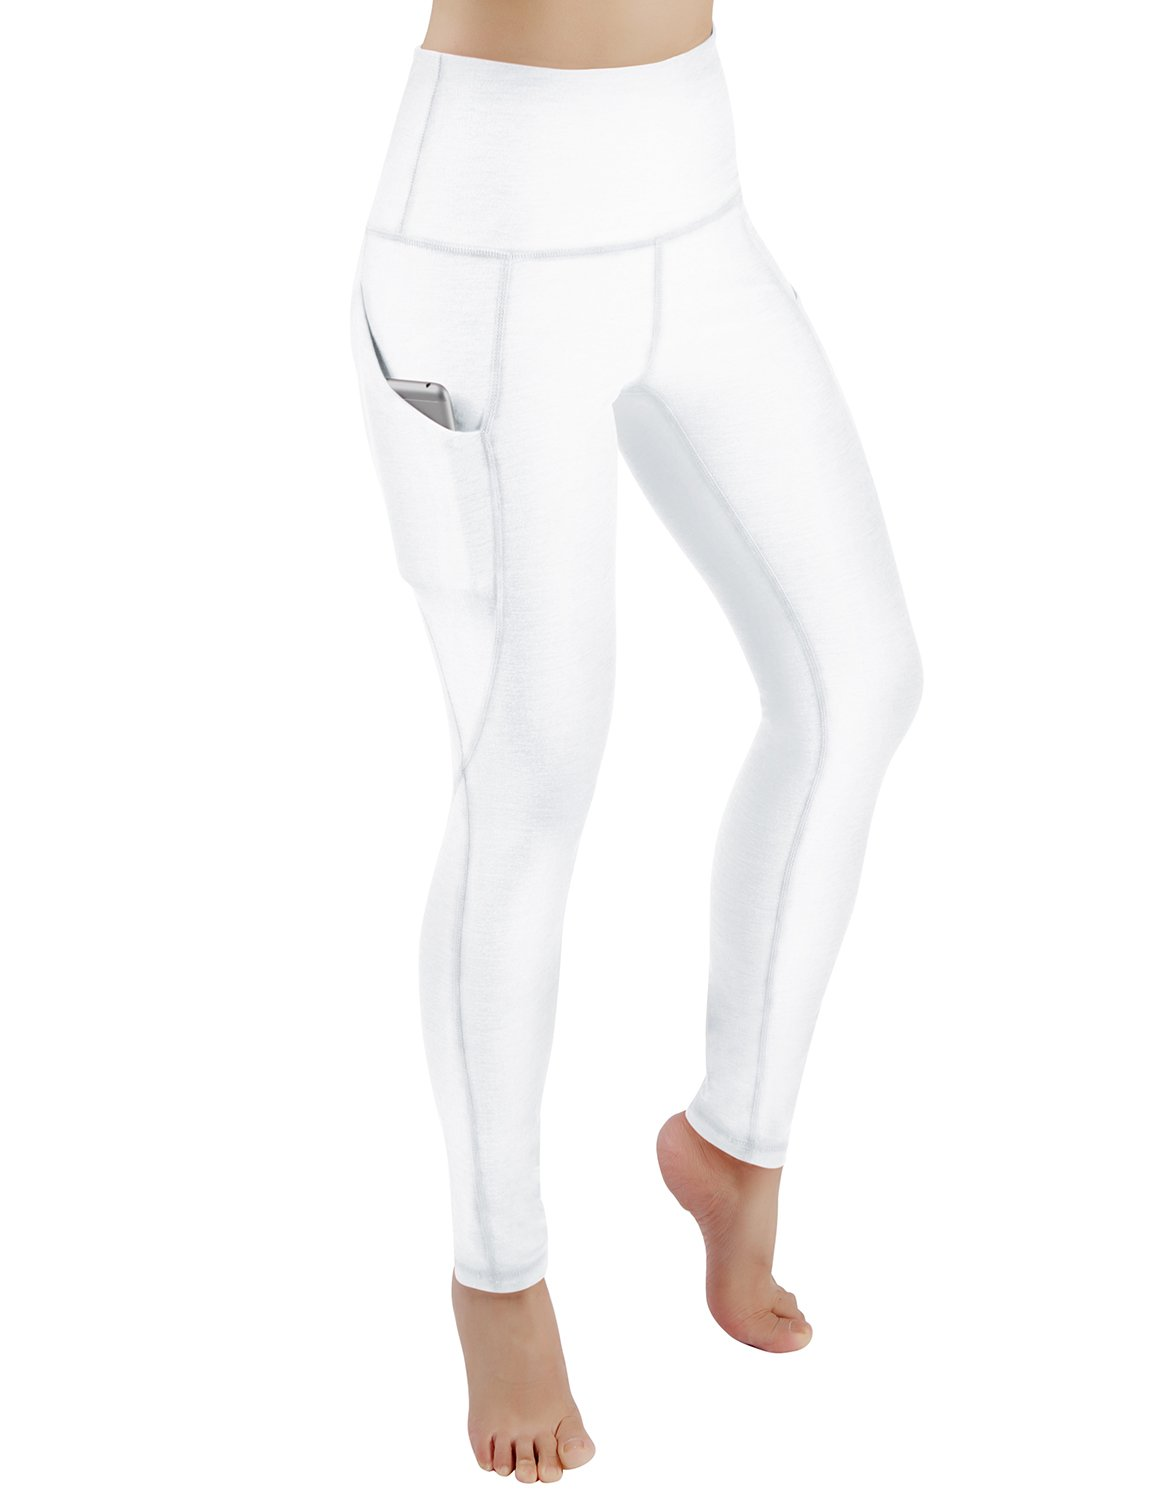 ODODOS High Waist Out Pocket Yoga Pants Tummy Control Workout Running 4 Way Stretch Yoga Leggings,White,X-Large